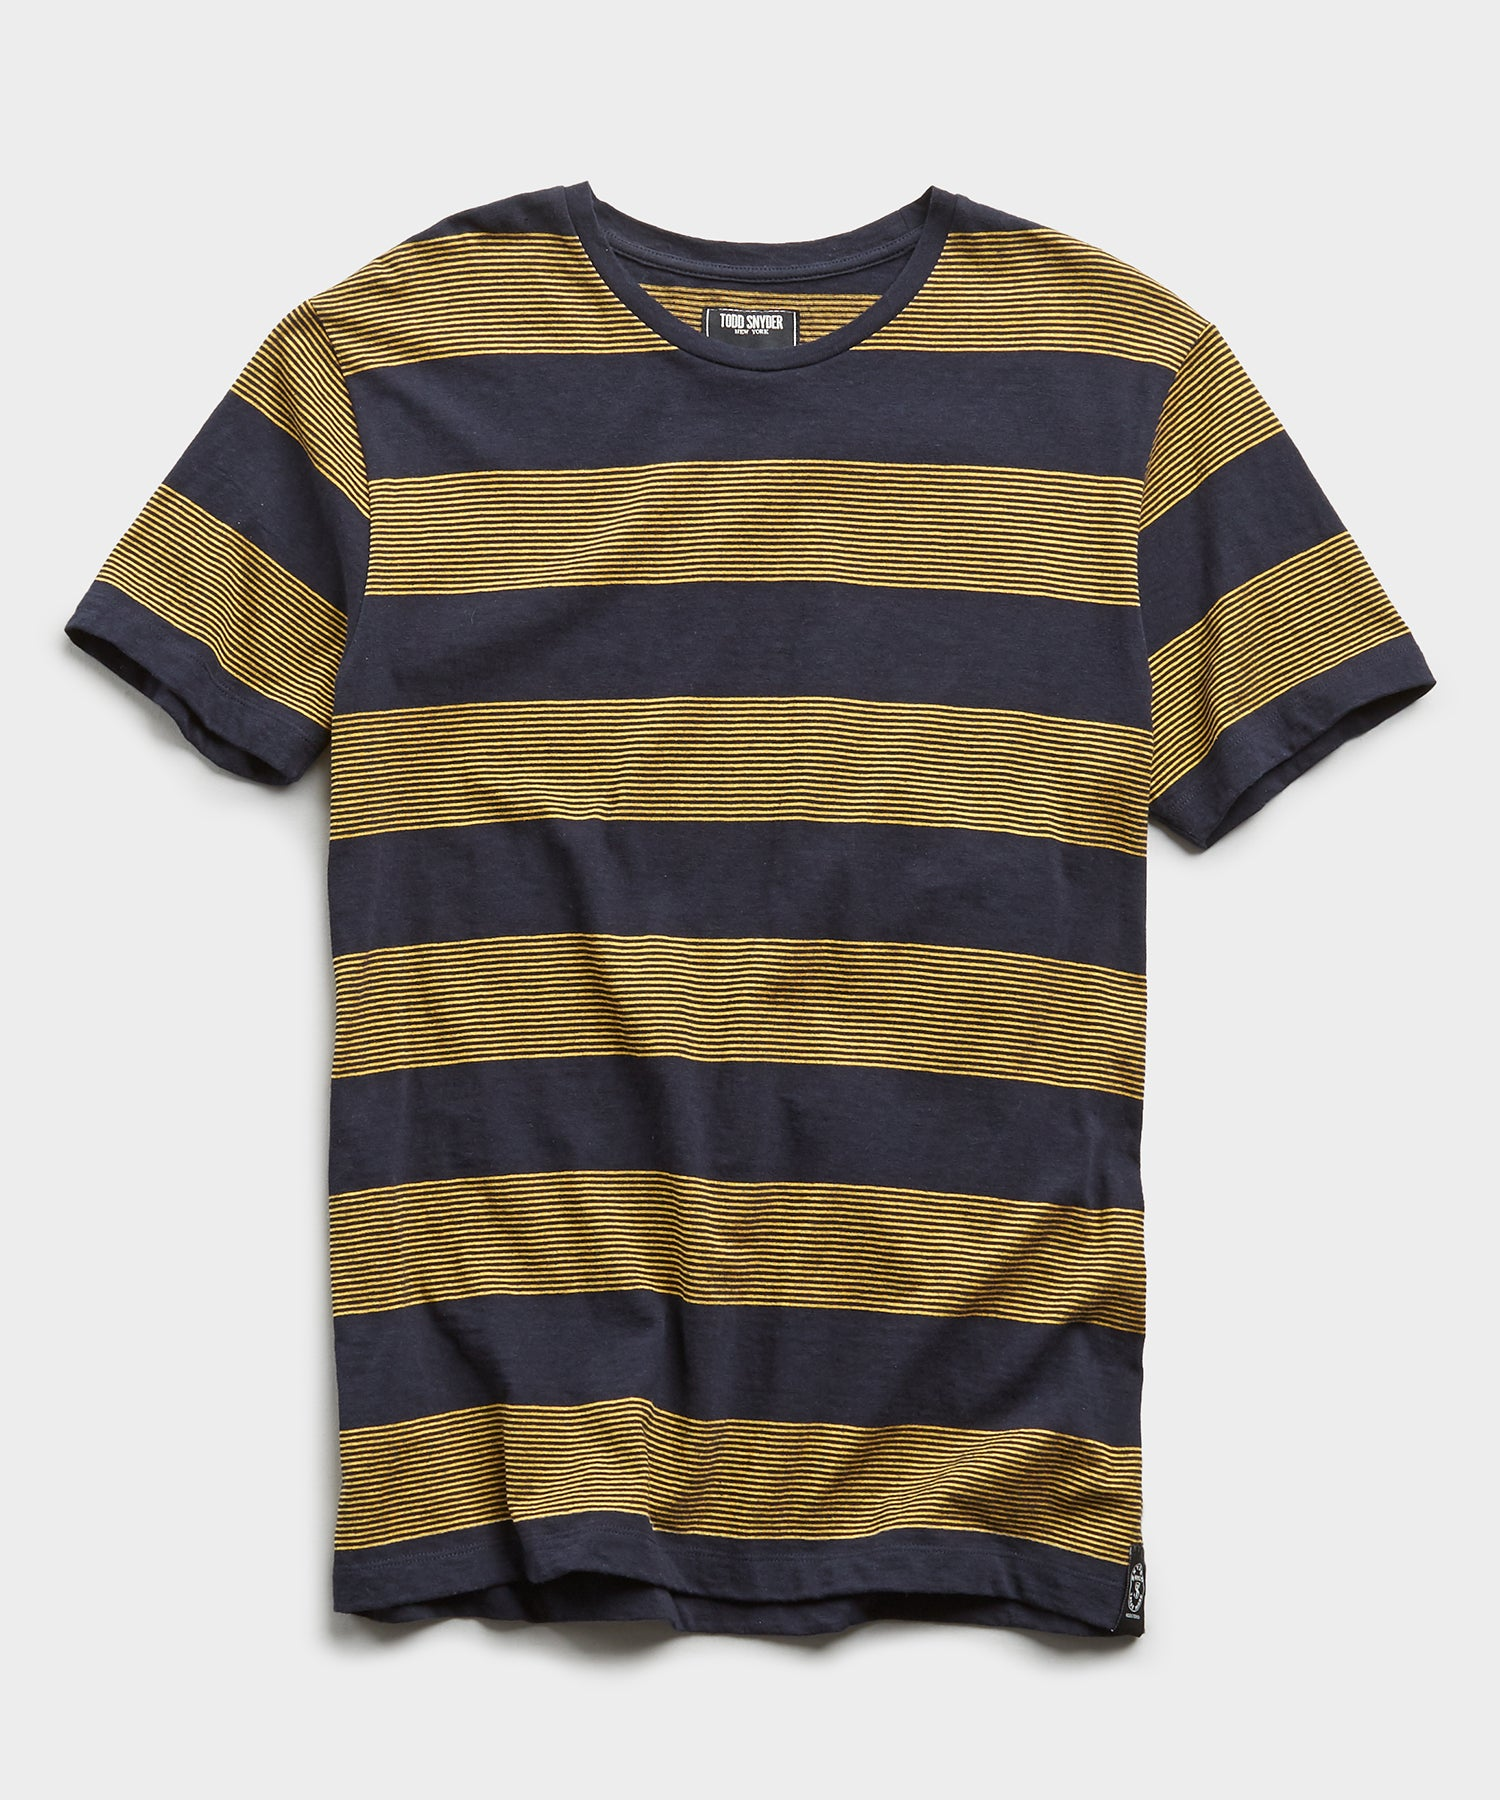 Portuguese Bold Micro Stripe Tee in Navy/Yellow